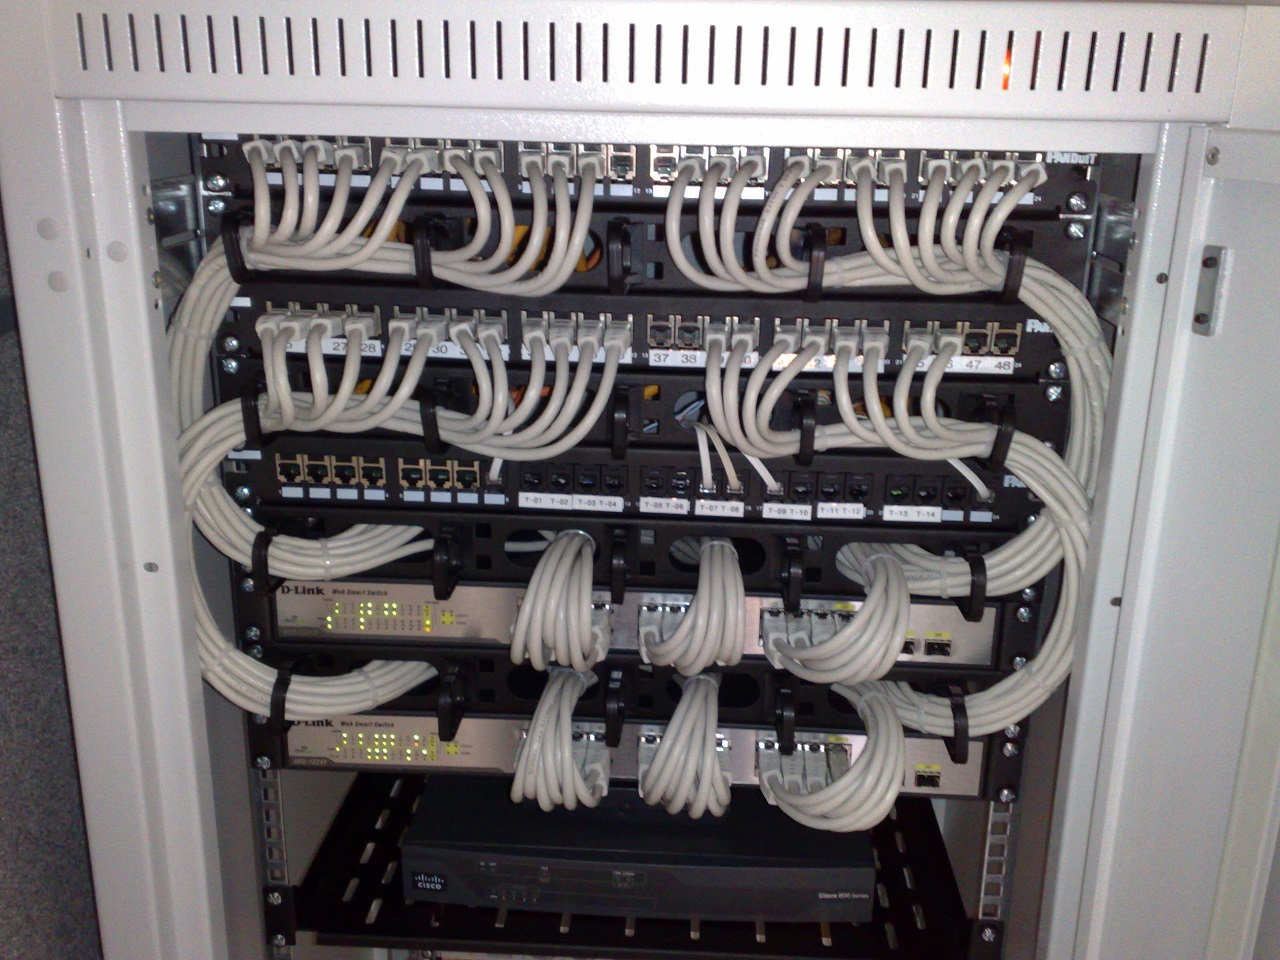 Patch Cable Wikipedia Male Ethernet Cat 5 Wiring Diagram A Couple Of Managed Gigabit Rackmount Switches Connected To The Ports On Few Panels Using Category 6 Cables All Equipment